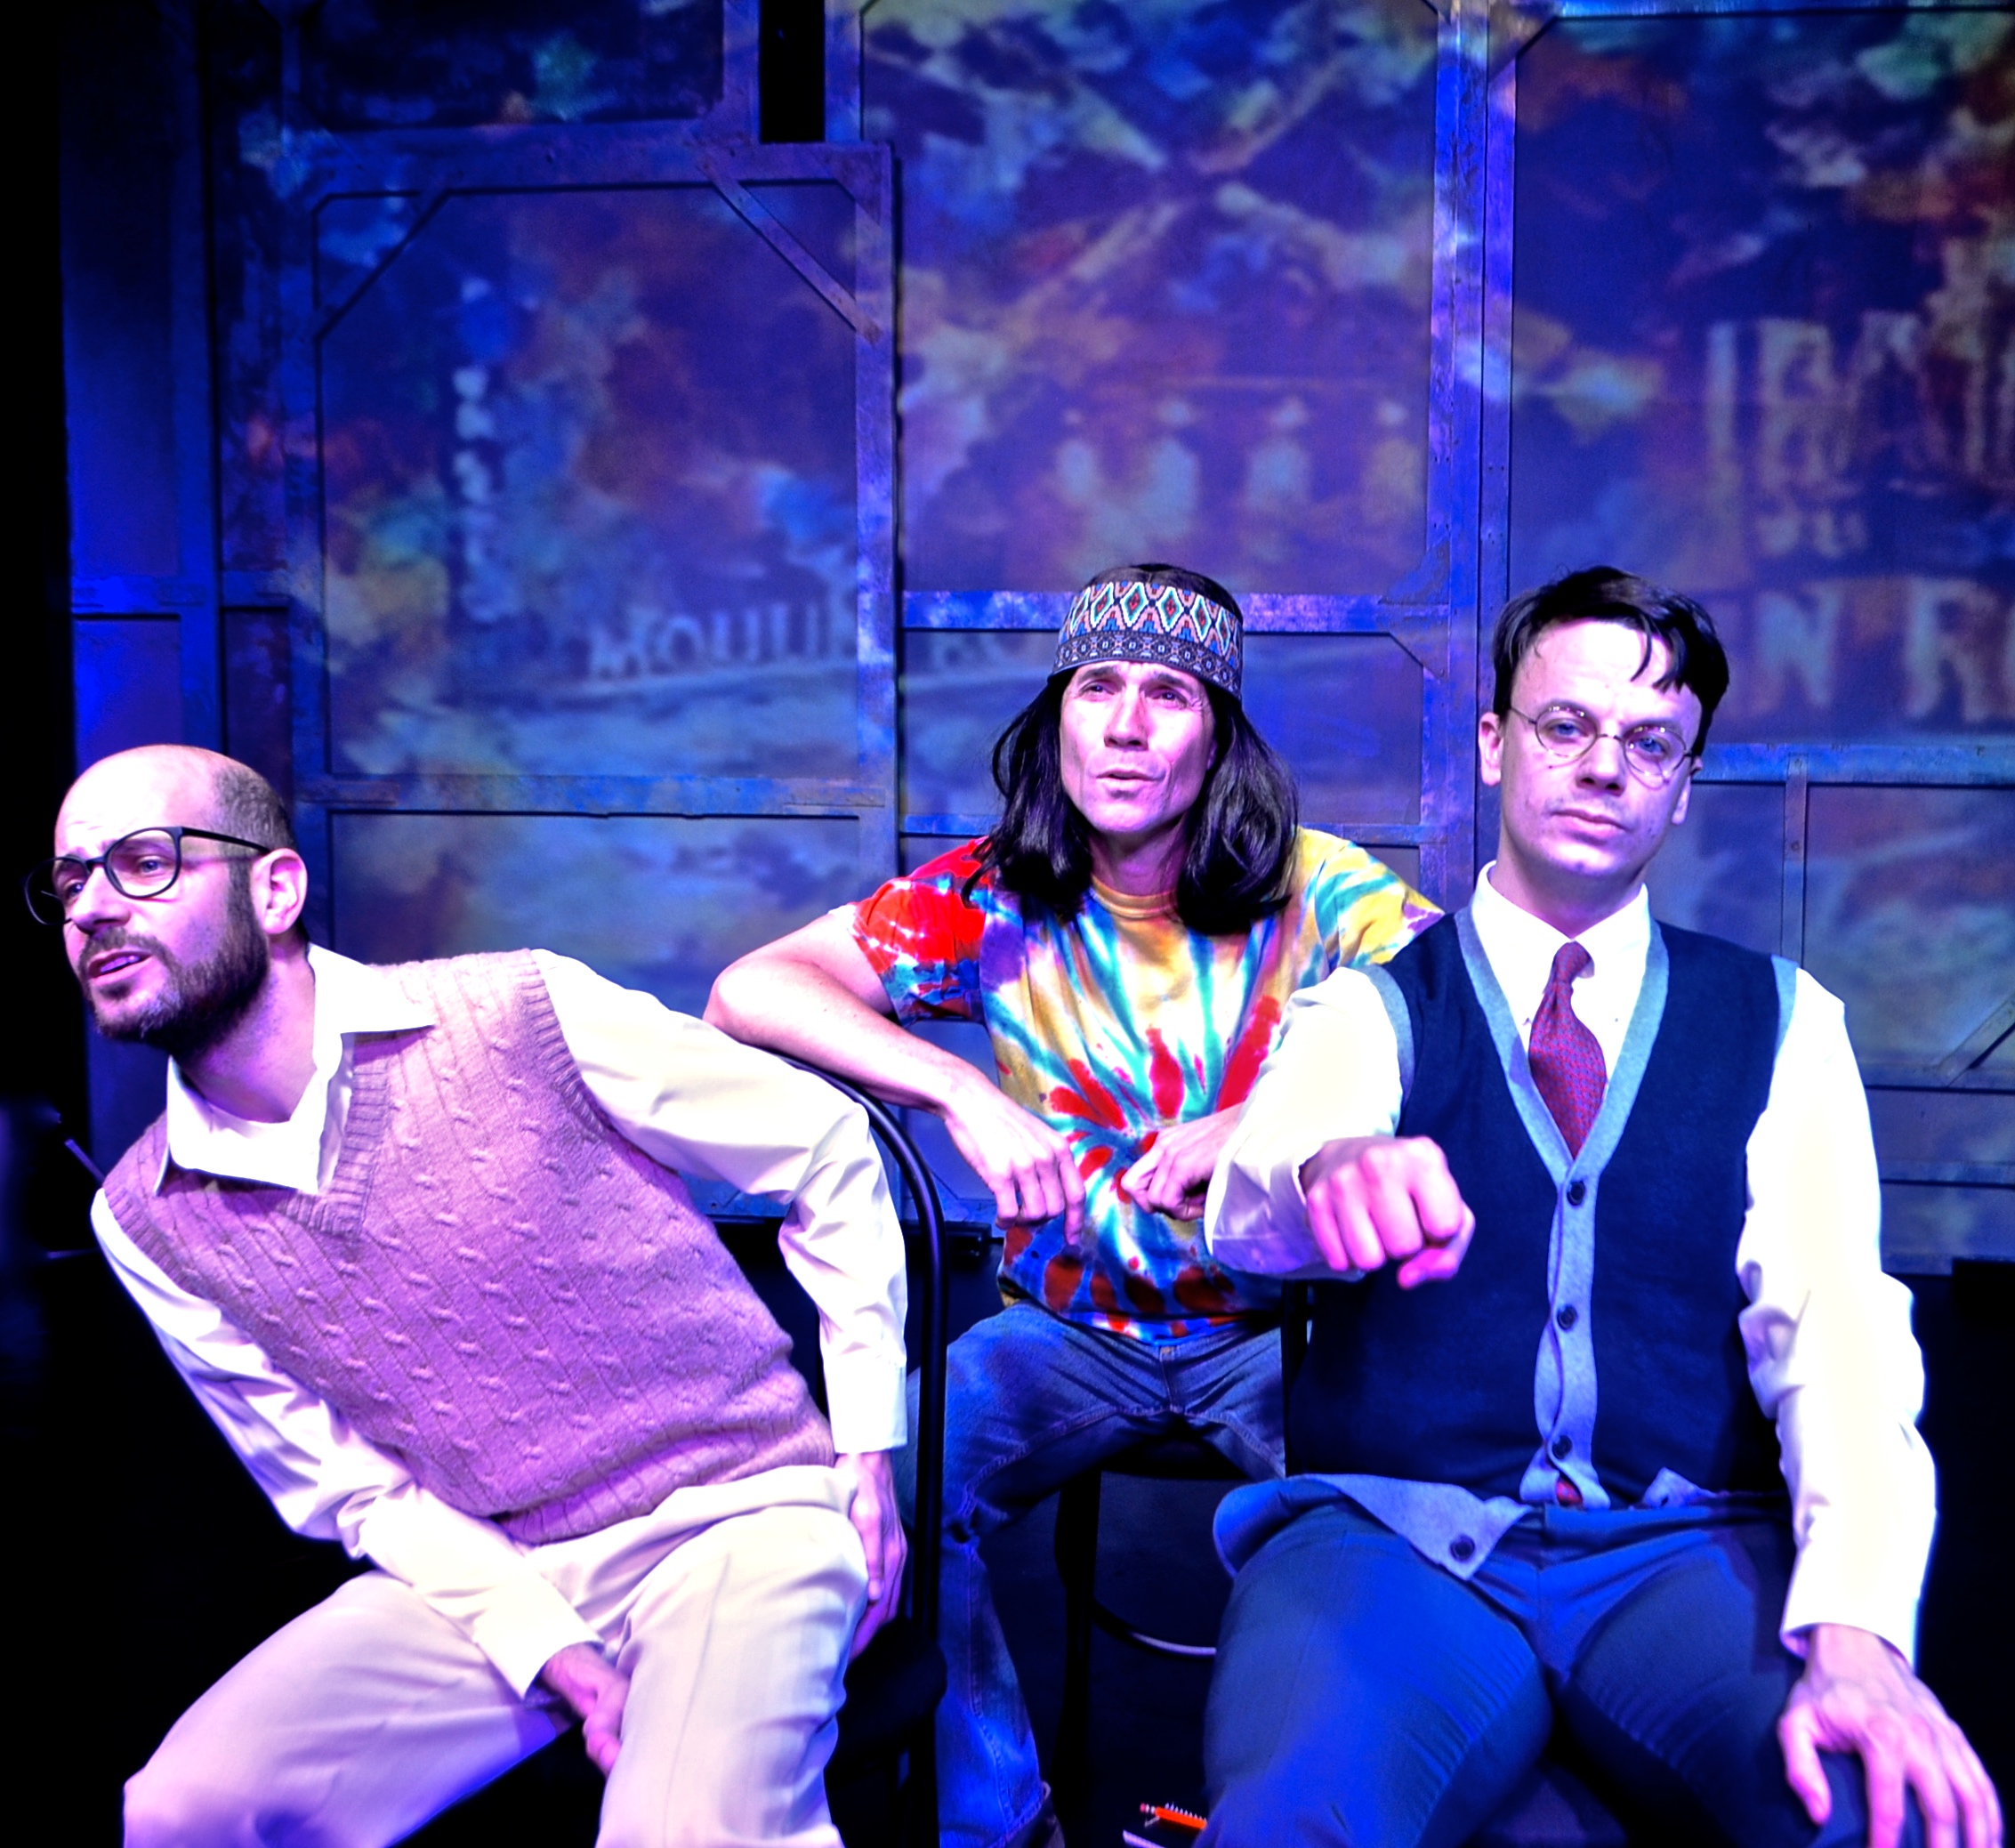 BWW Review: CVRep's A CLASS ACT is Enjoyable Musical Theatre